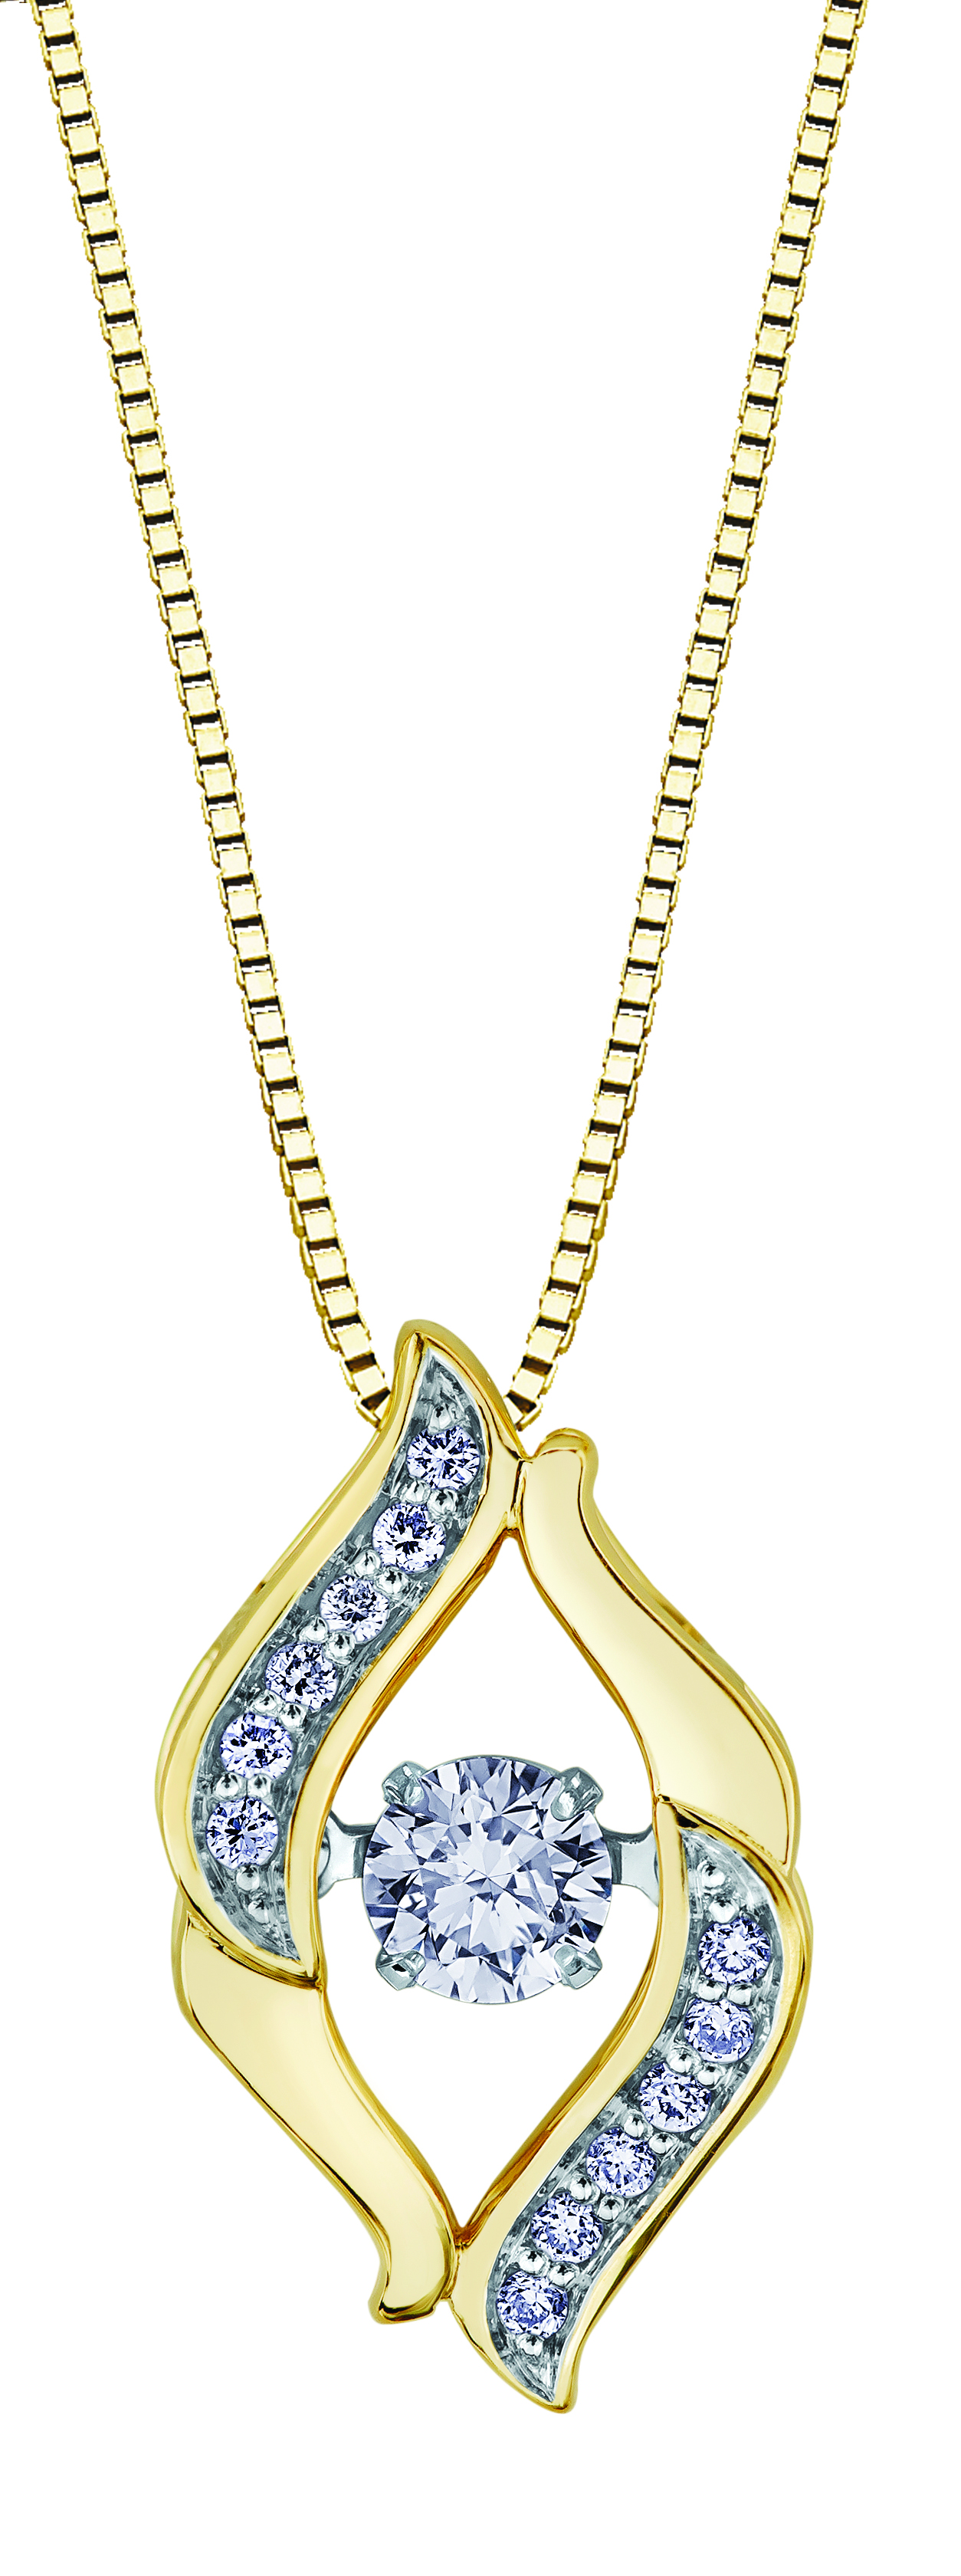 Pendentif - Or 2-tons 10K (jaune et blanc) & Diamants Canadiens totalisant 0.22 Carat